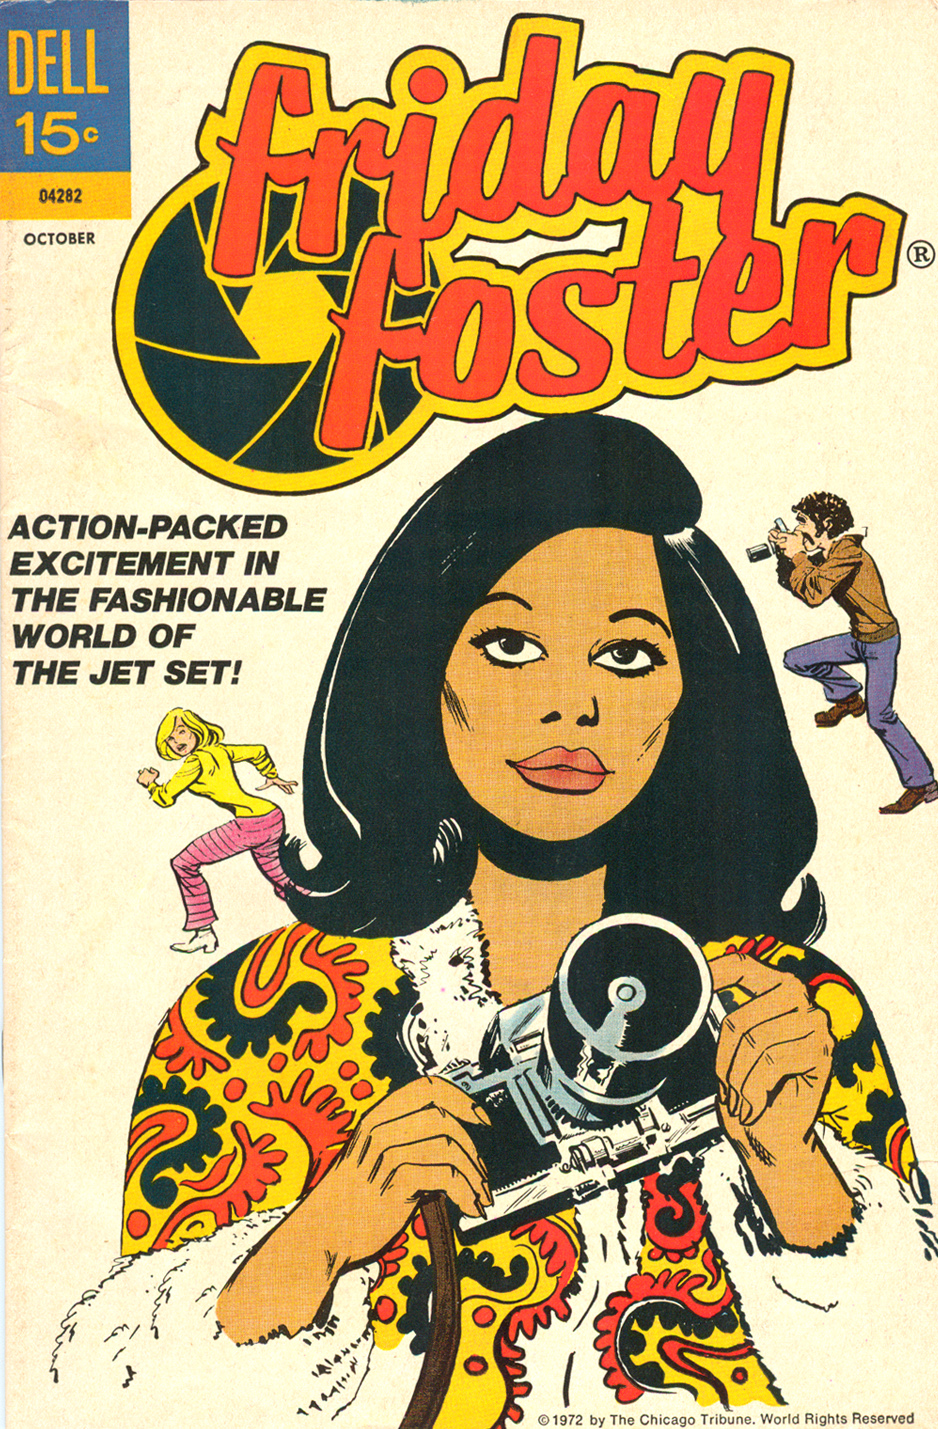 Friday Foster  (October 1972) Comic Book by Dell